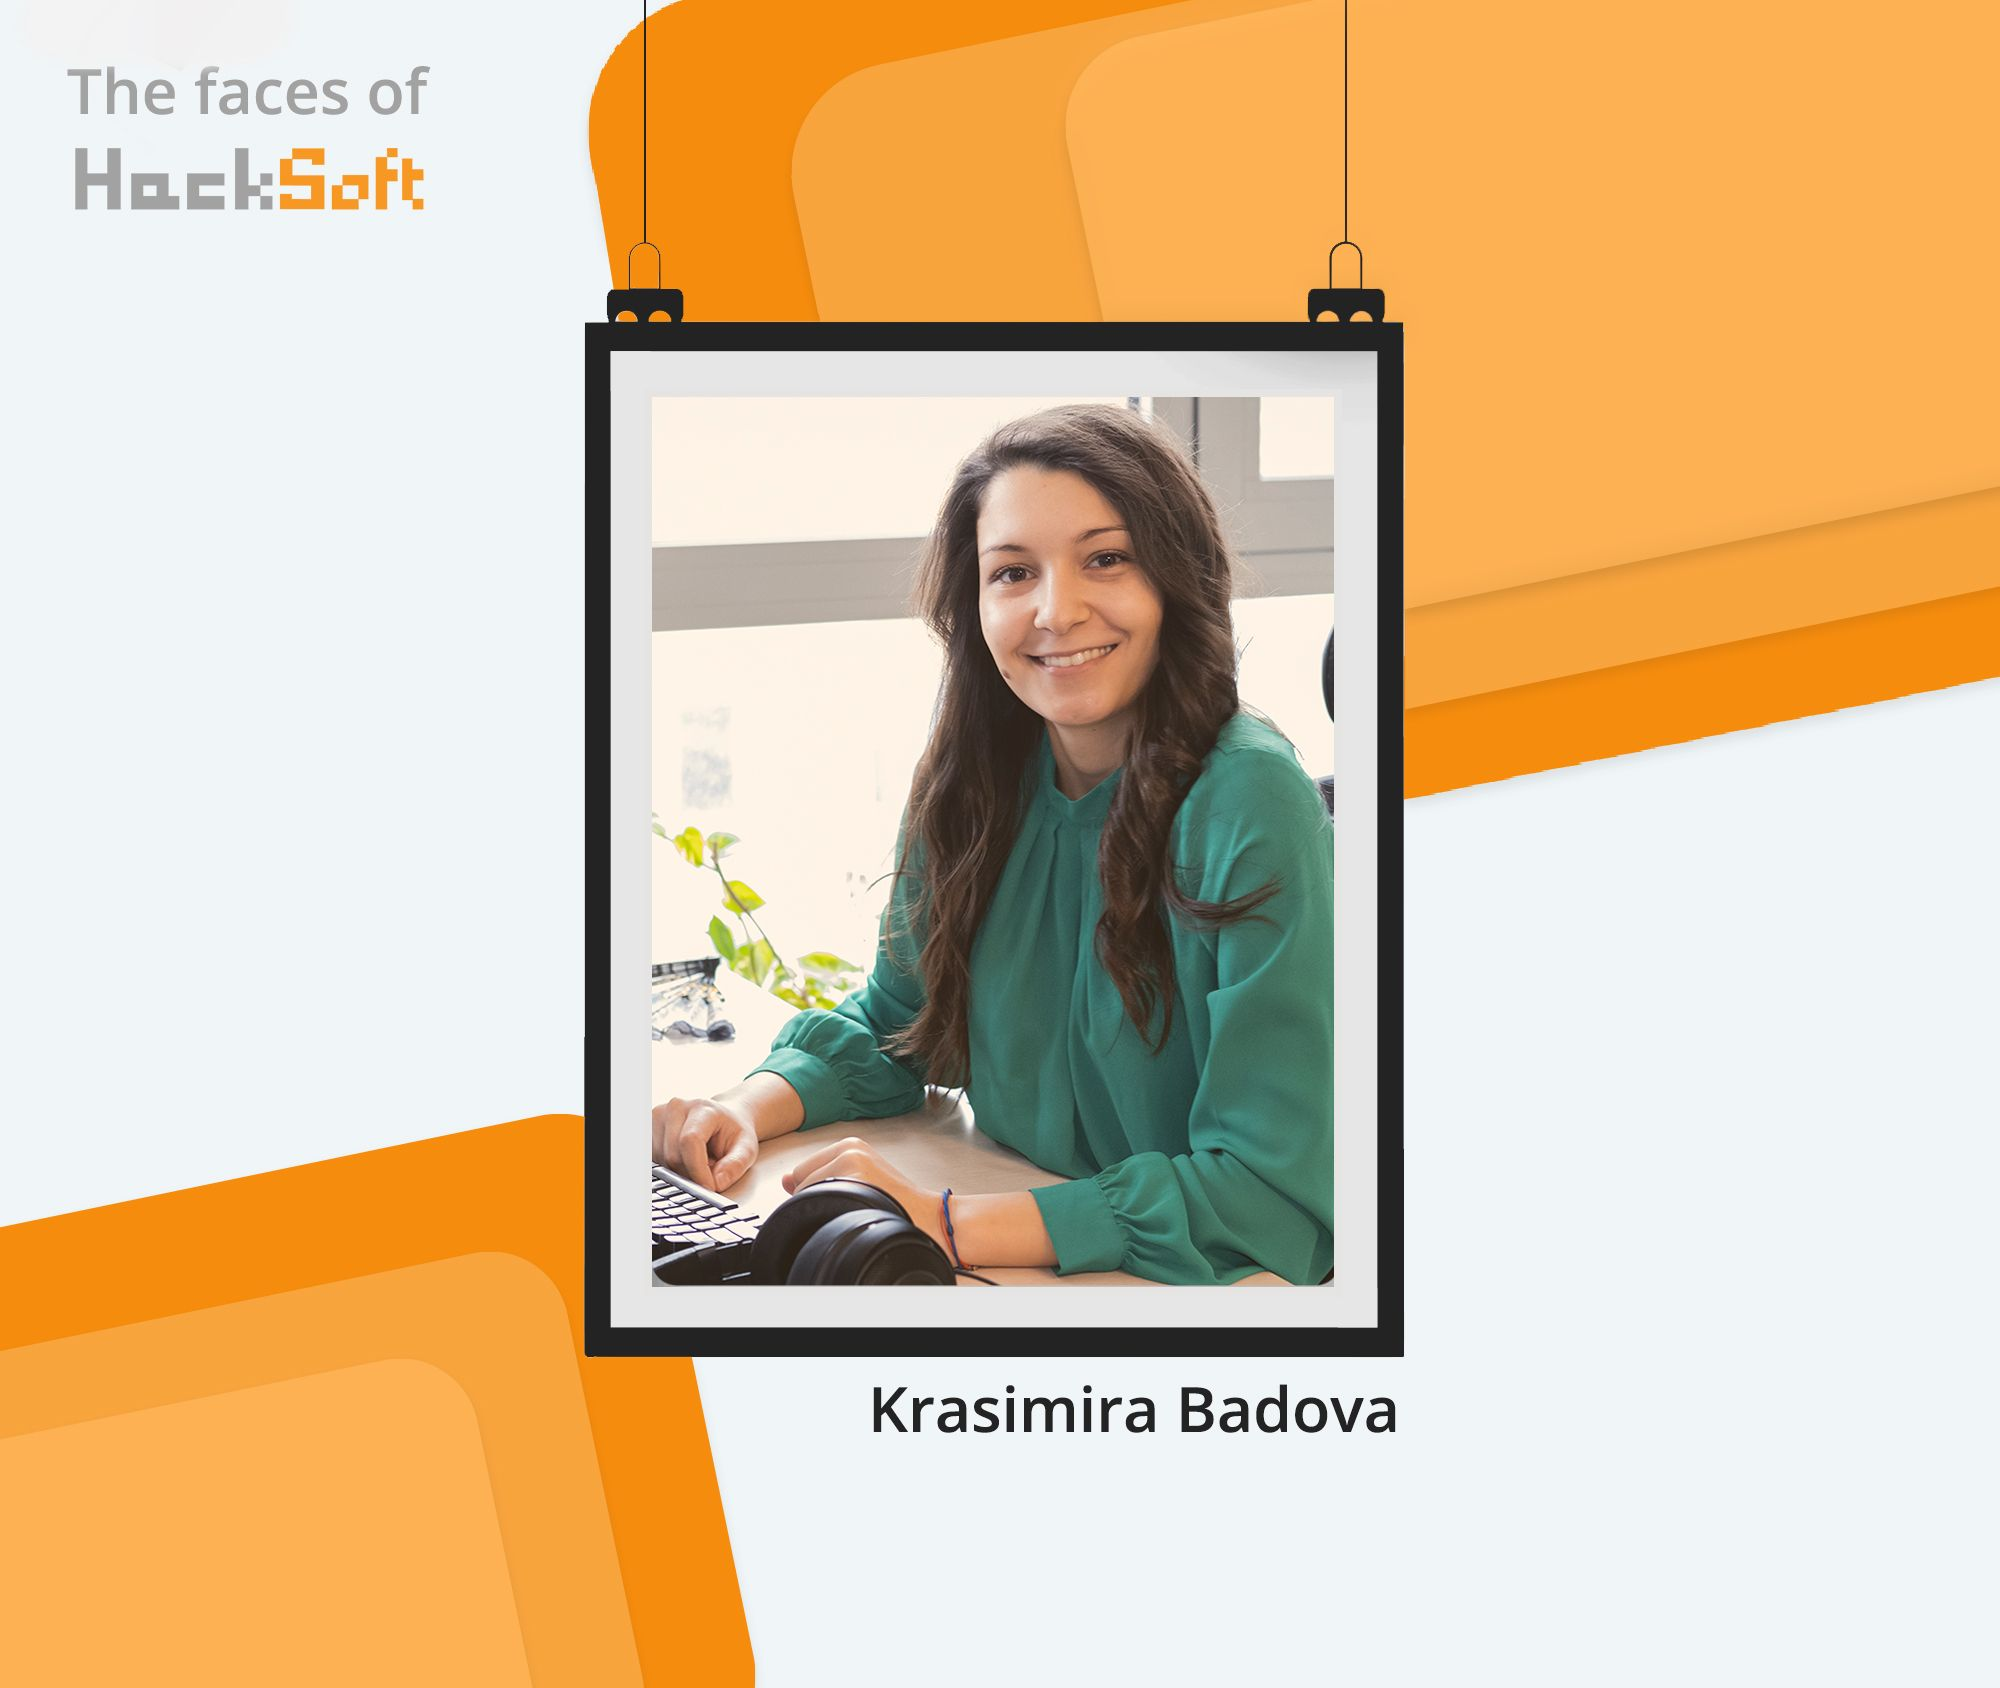 Behind any successful company, stands a motivated team. We would love to tell you more about it. Starting with Krasimira Badova!